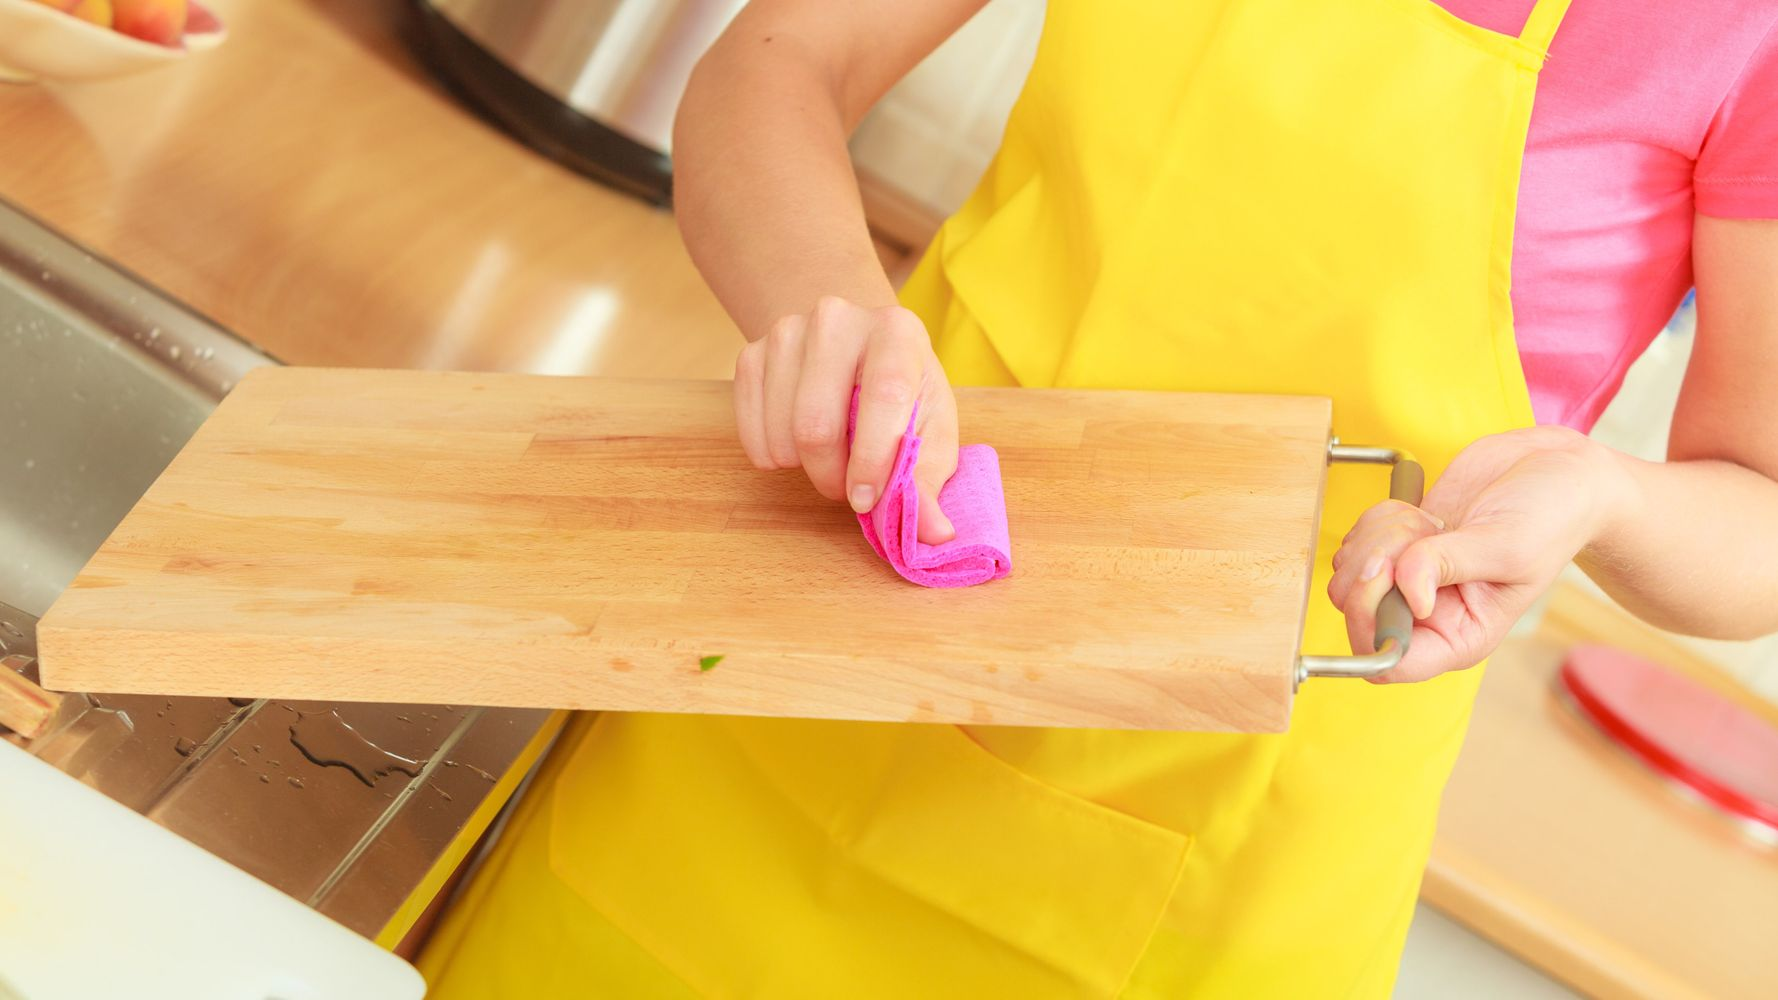 The Right Way To Clean Your Cutting Board Huffpost Life